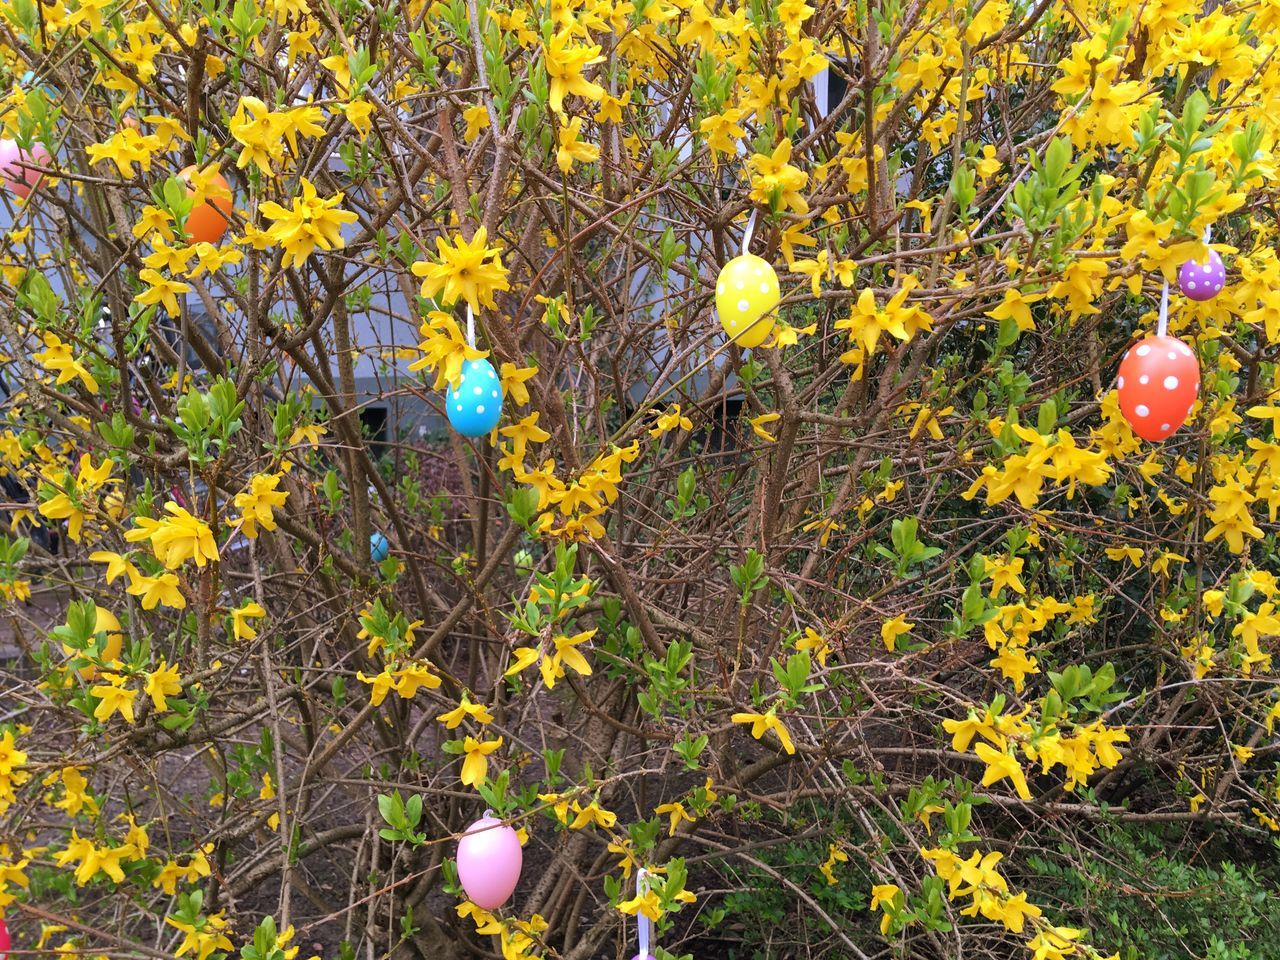 growth, flower, yellow, fragility, plant, freshness, no people, nature, field, day, outdoors, beauty in nature, easter, leaf, close-up, blooming